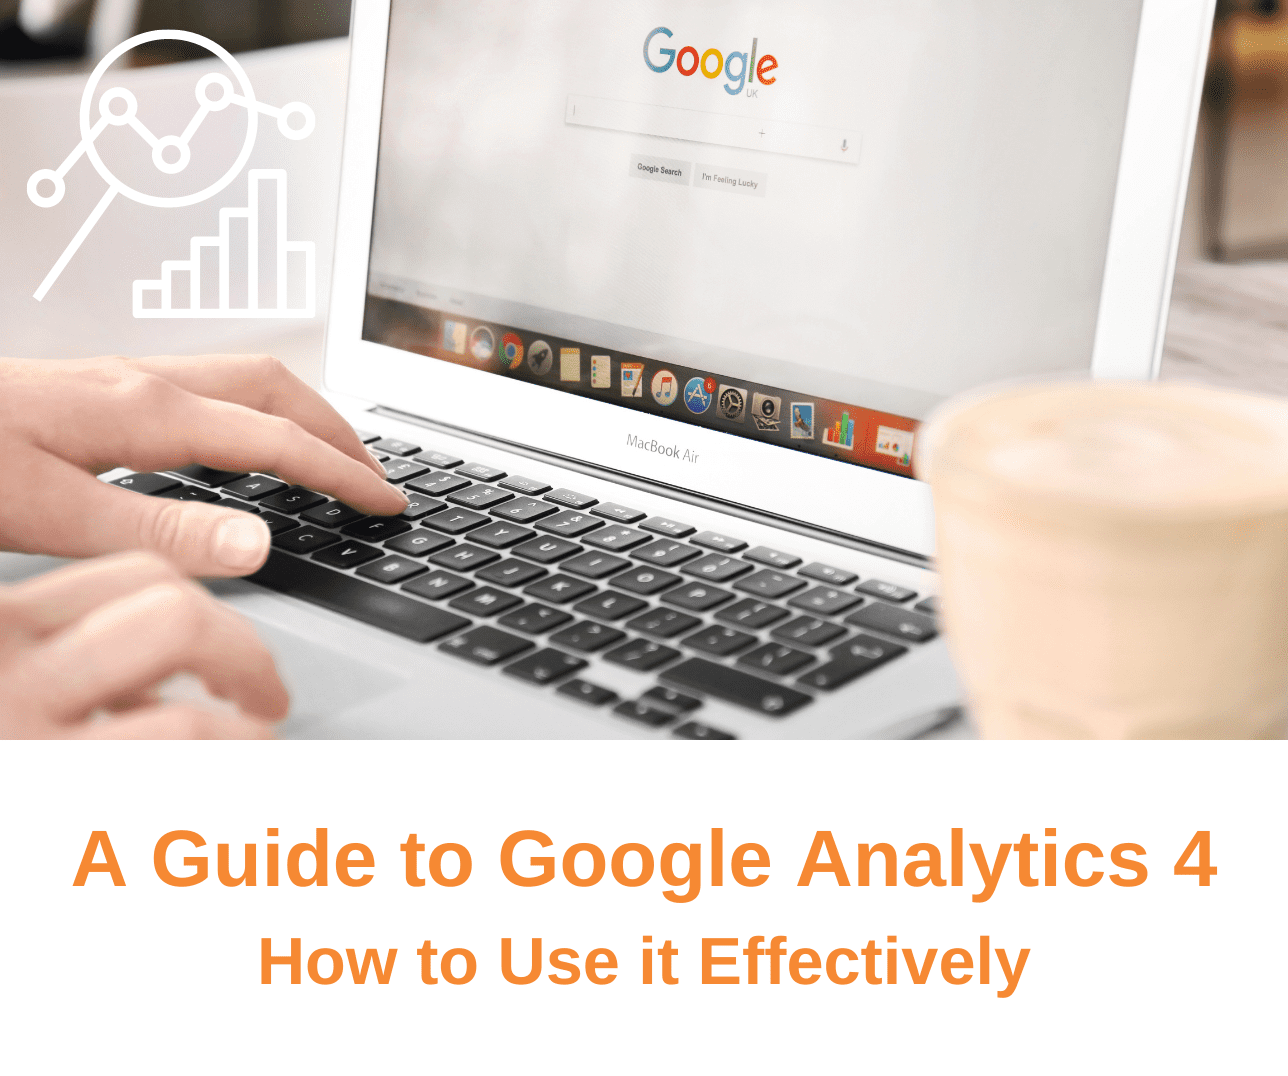 A Guide to Google Analytics 4: How to Use it Effectively